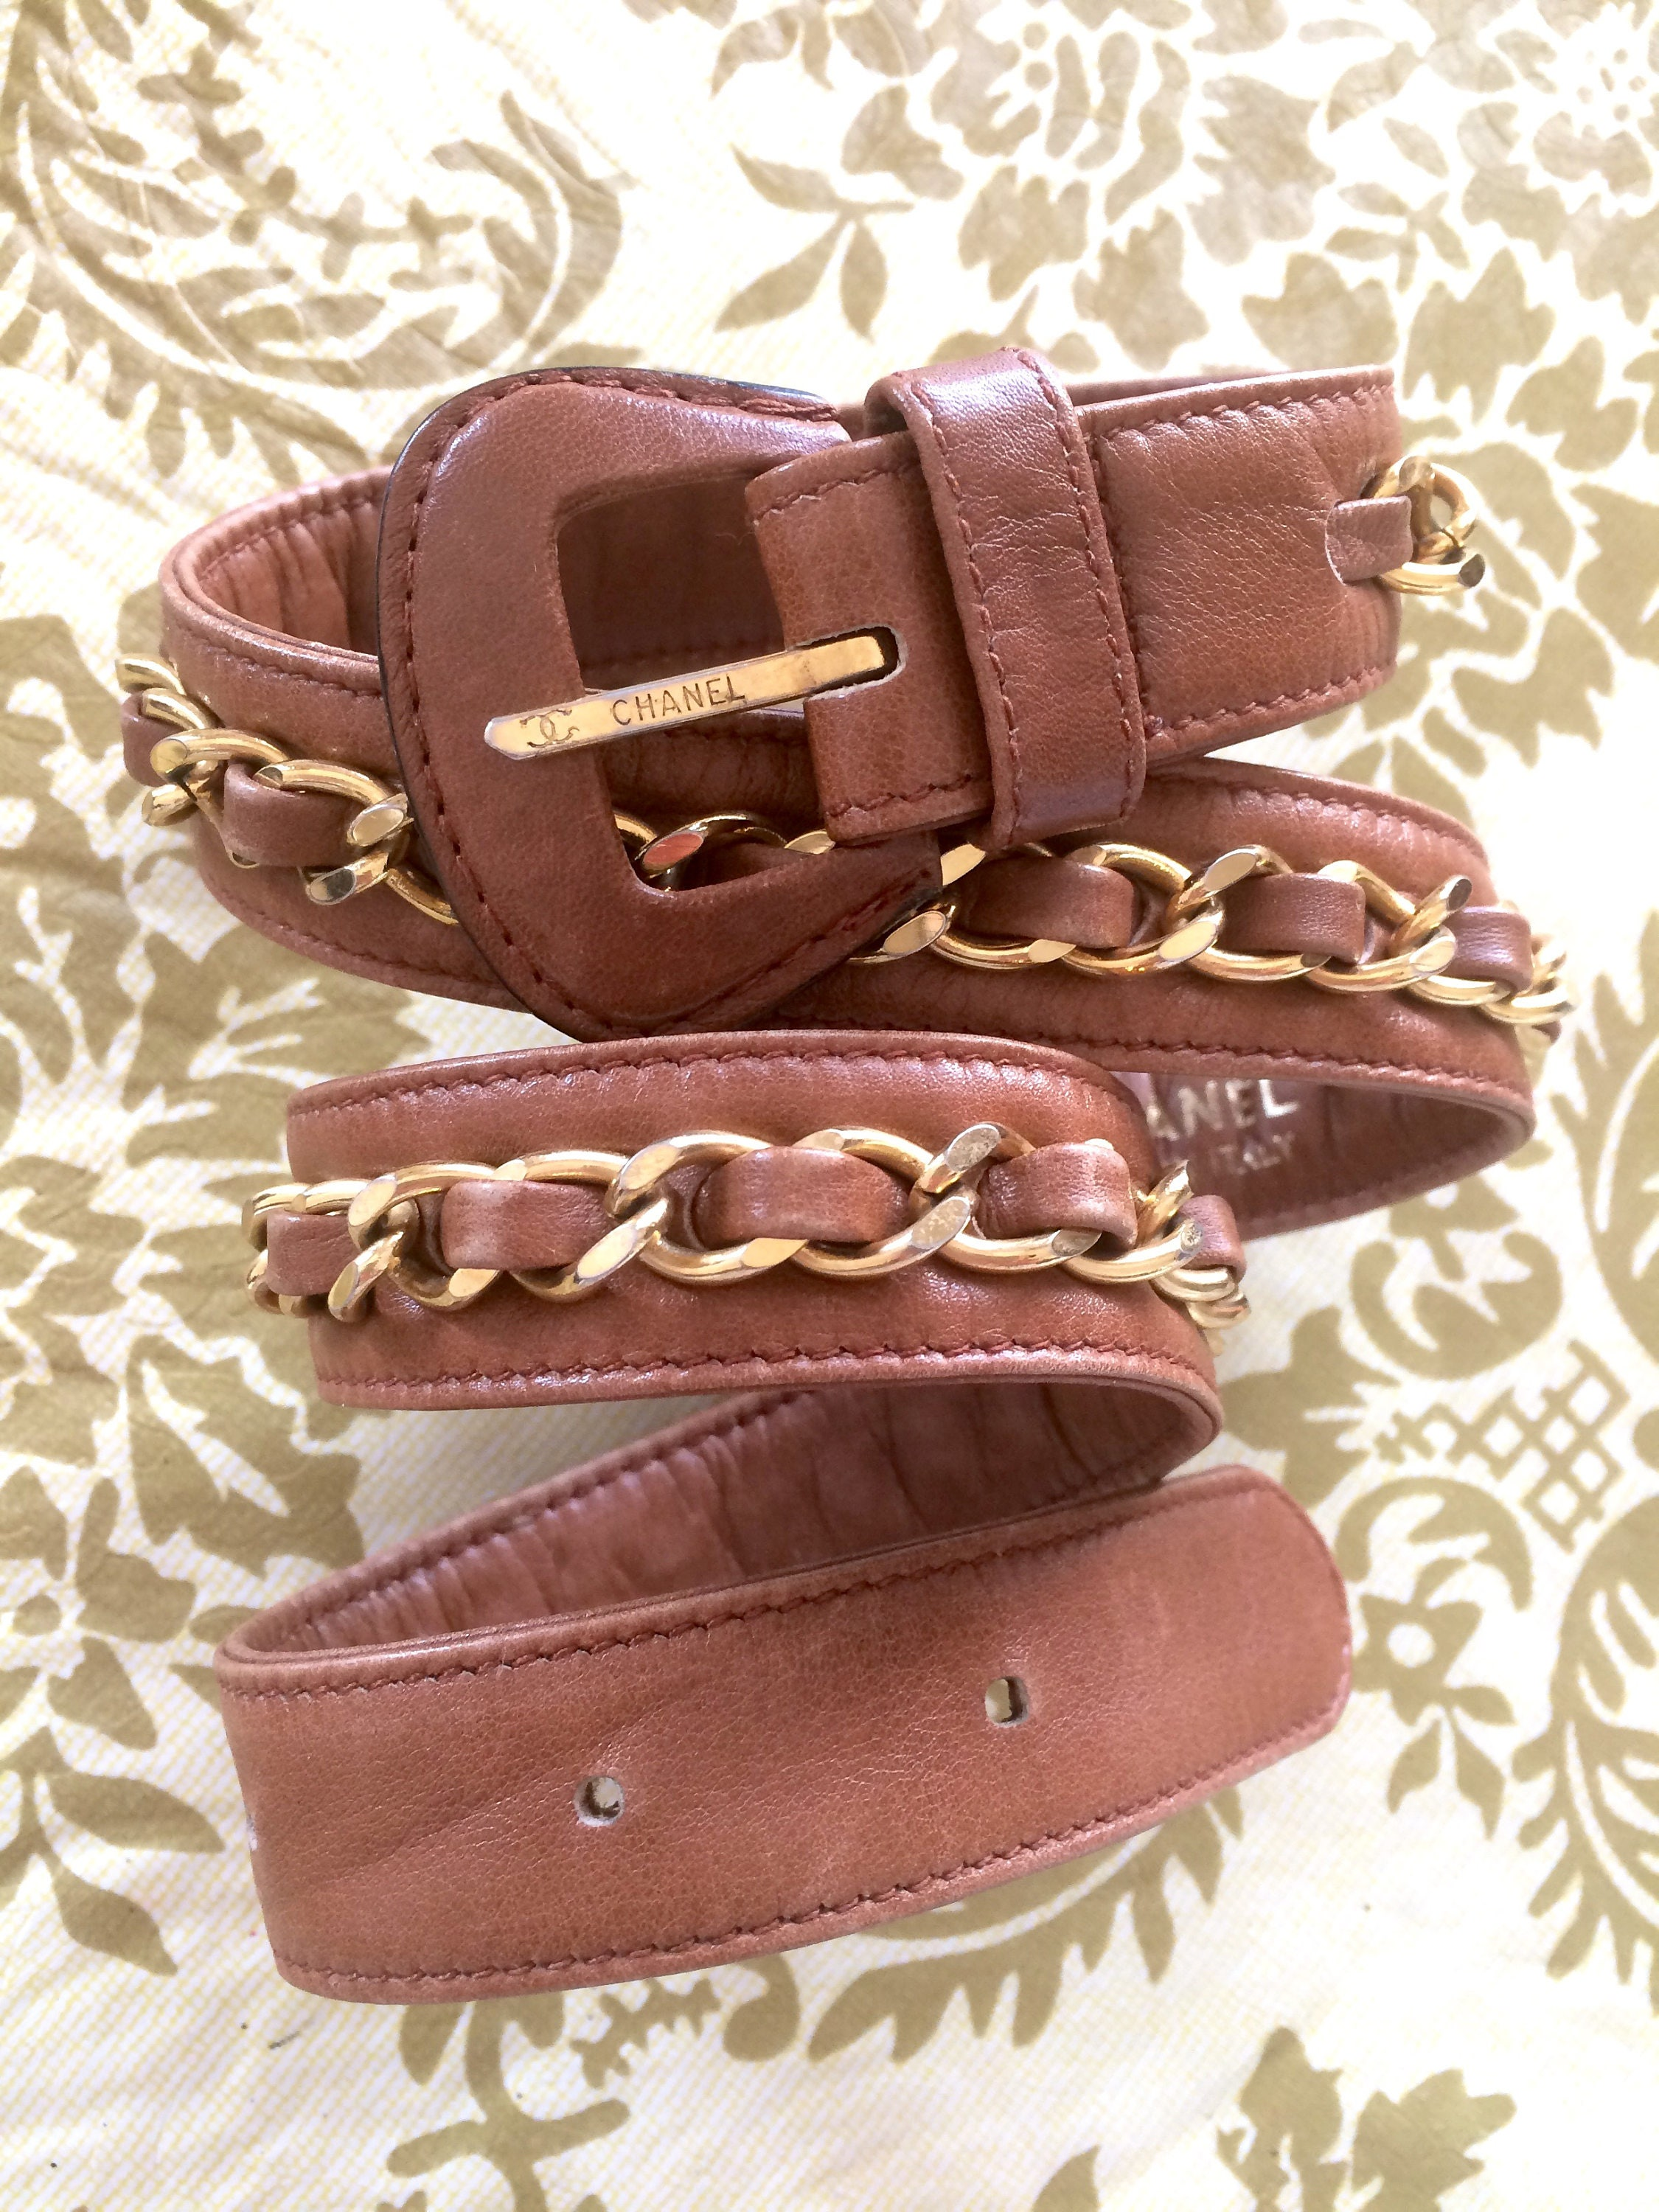 927c850211e6 Vintage CHANEL brown leather belt with gold tone chains.